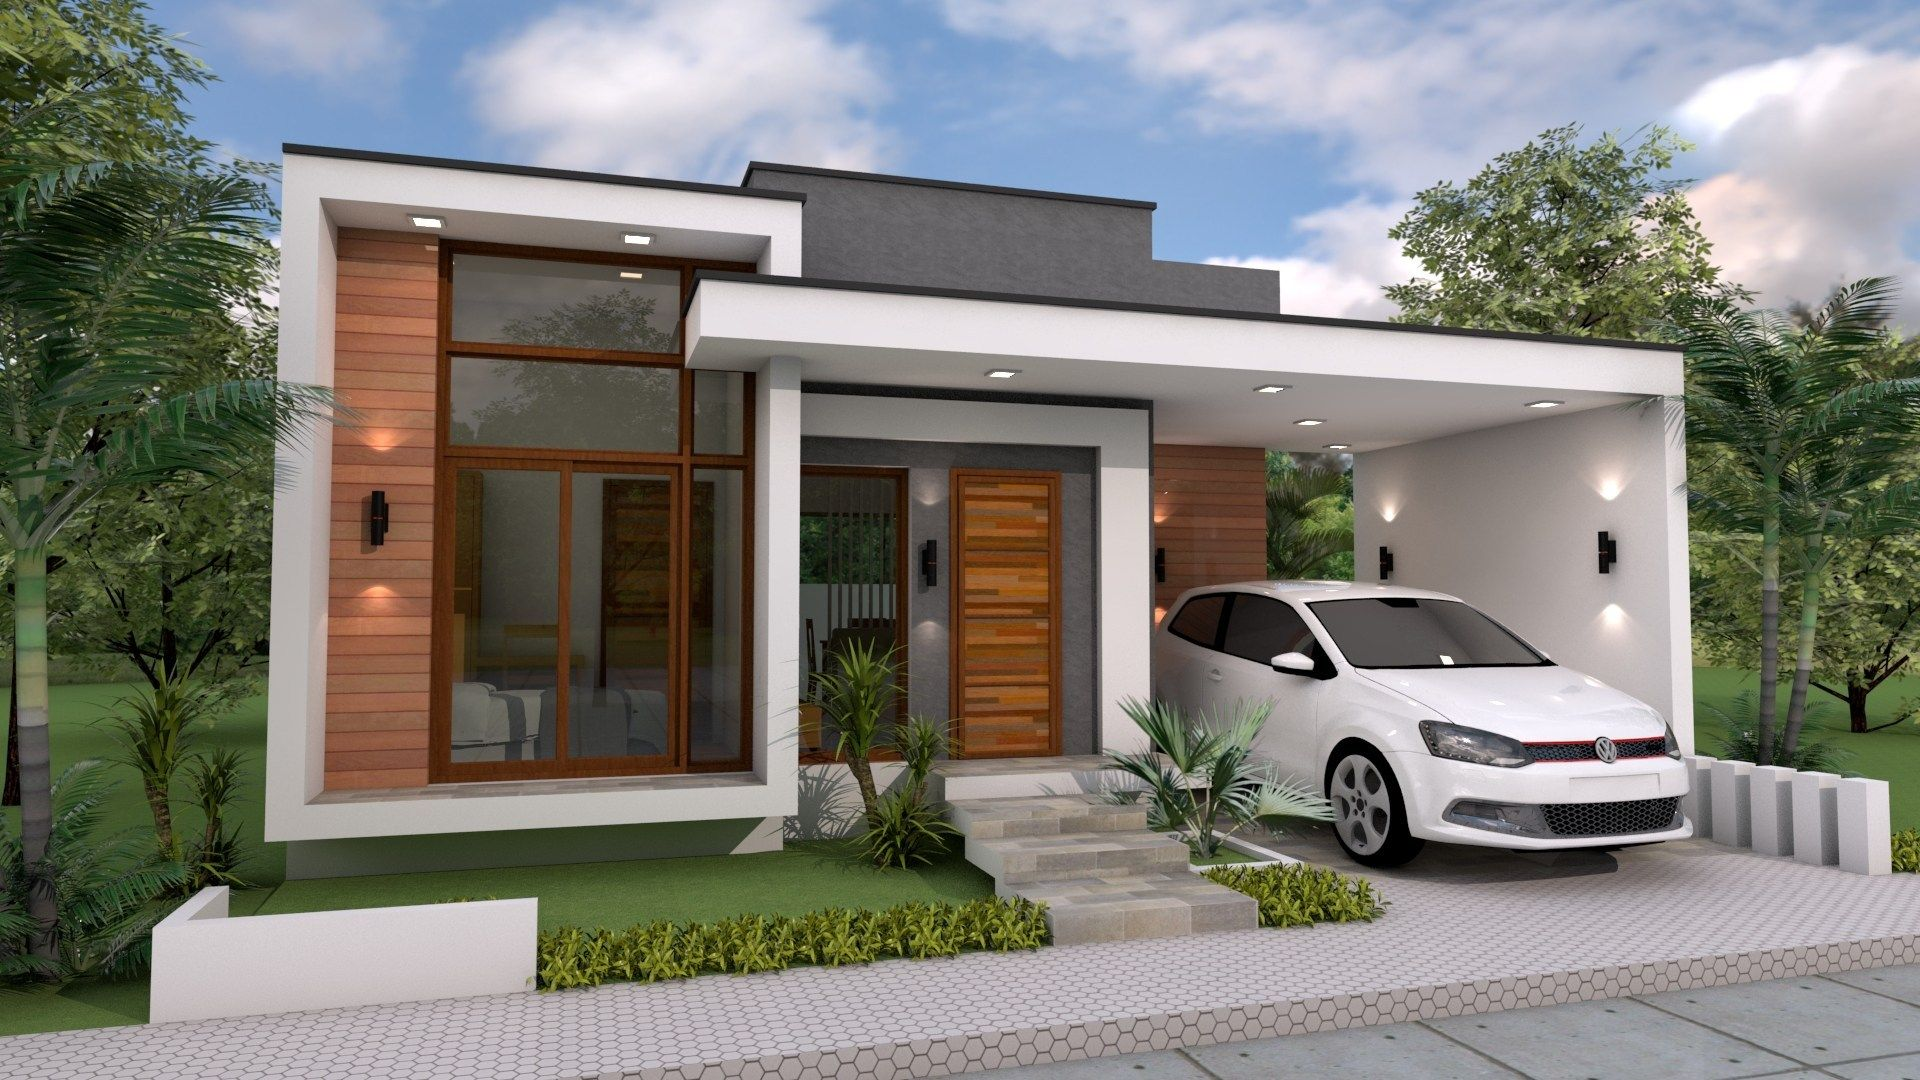 3 Bedrooms Home Design Plan 10x12m | Modern bungalow house ...